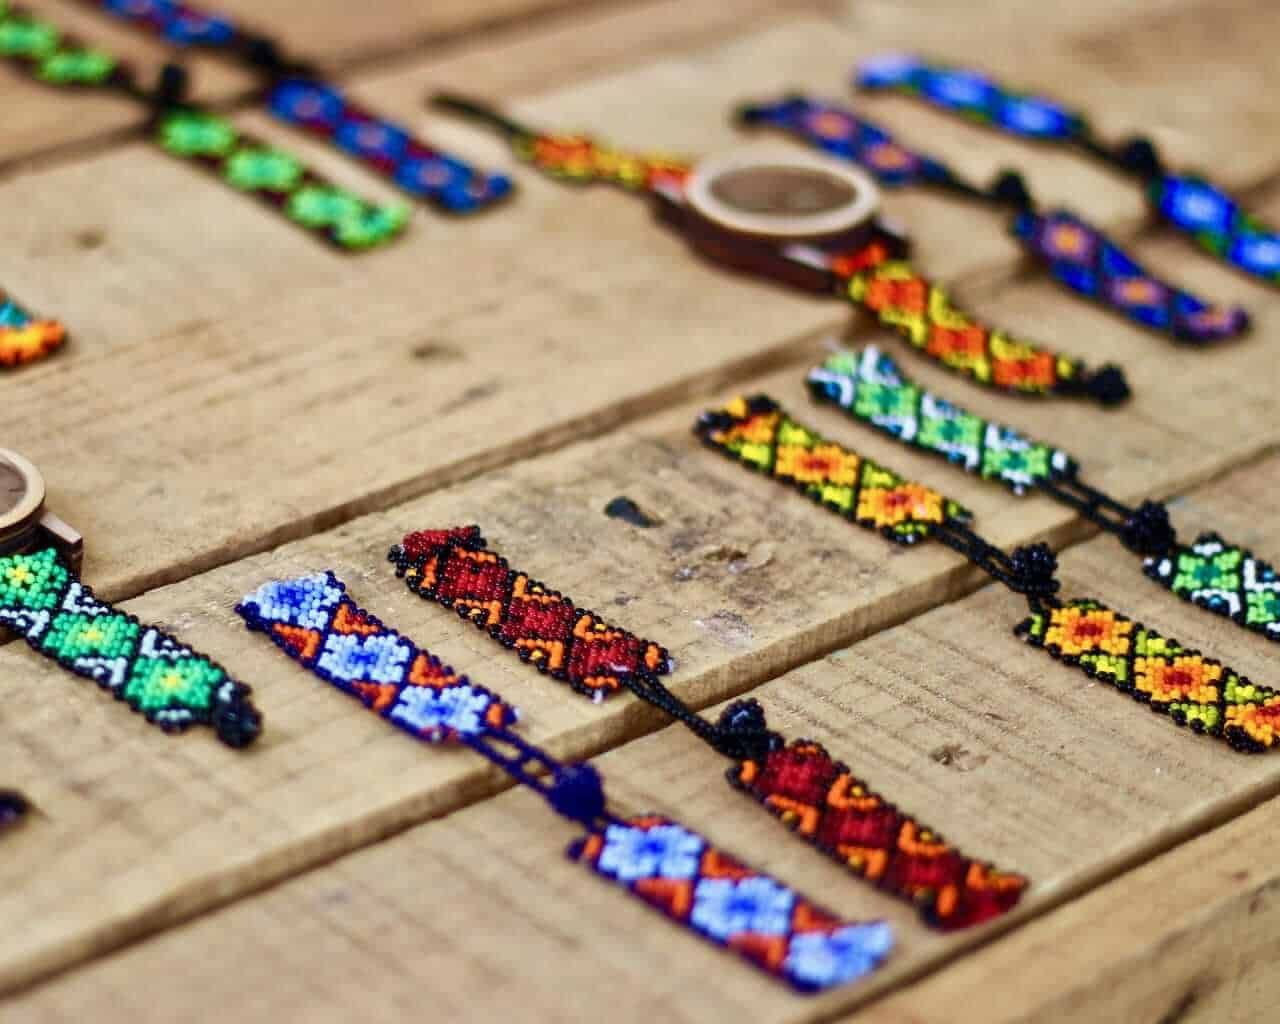 Huichol jewellery - souvenir from Mexico